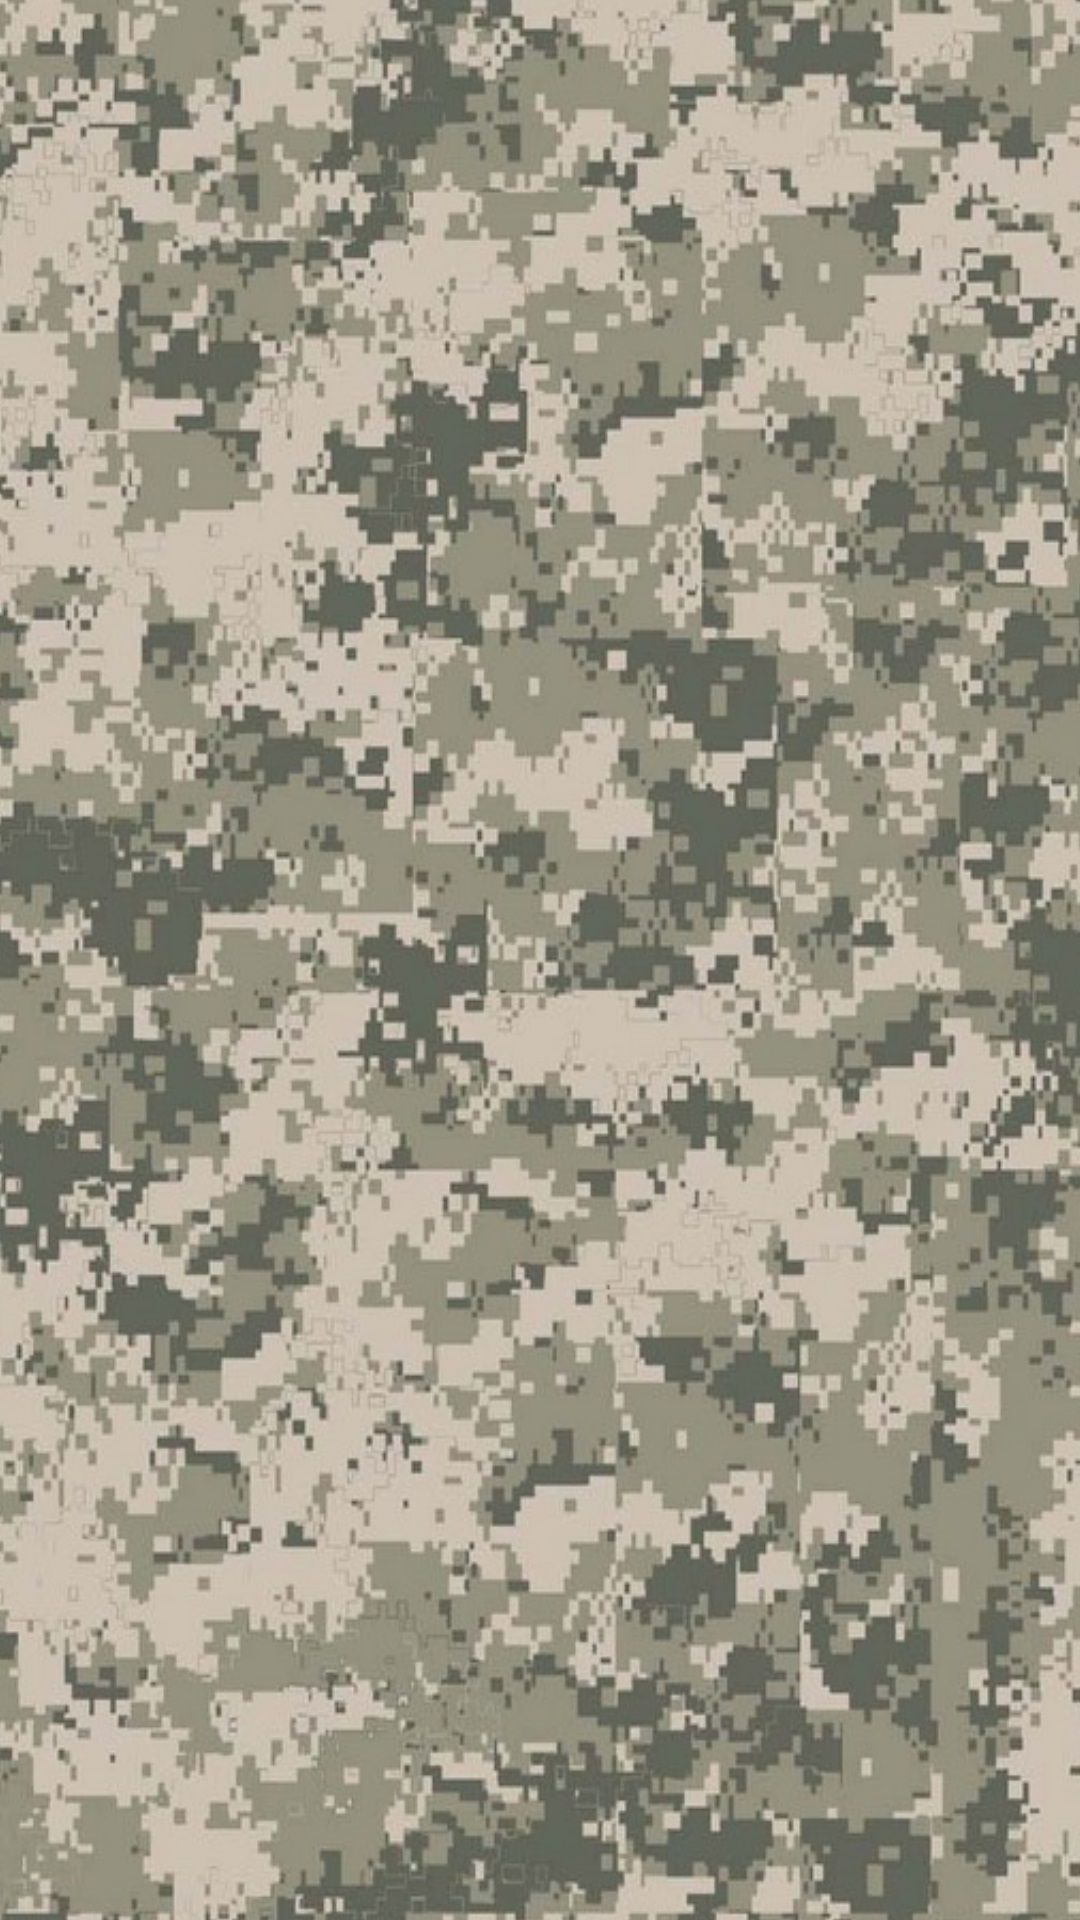 Res 1080x1920 Camouflage Wallpaper For Iphone Or Android Tags Camo Hunting Army Backgrounds Camo Wallpaper Camouflage Wallpaper Camoflauge Wallpaper